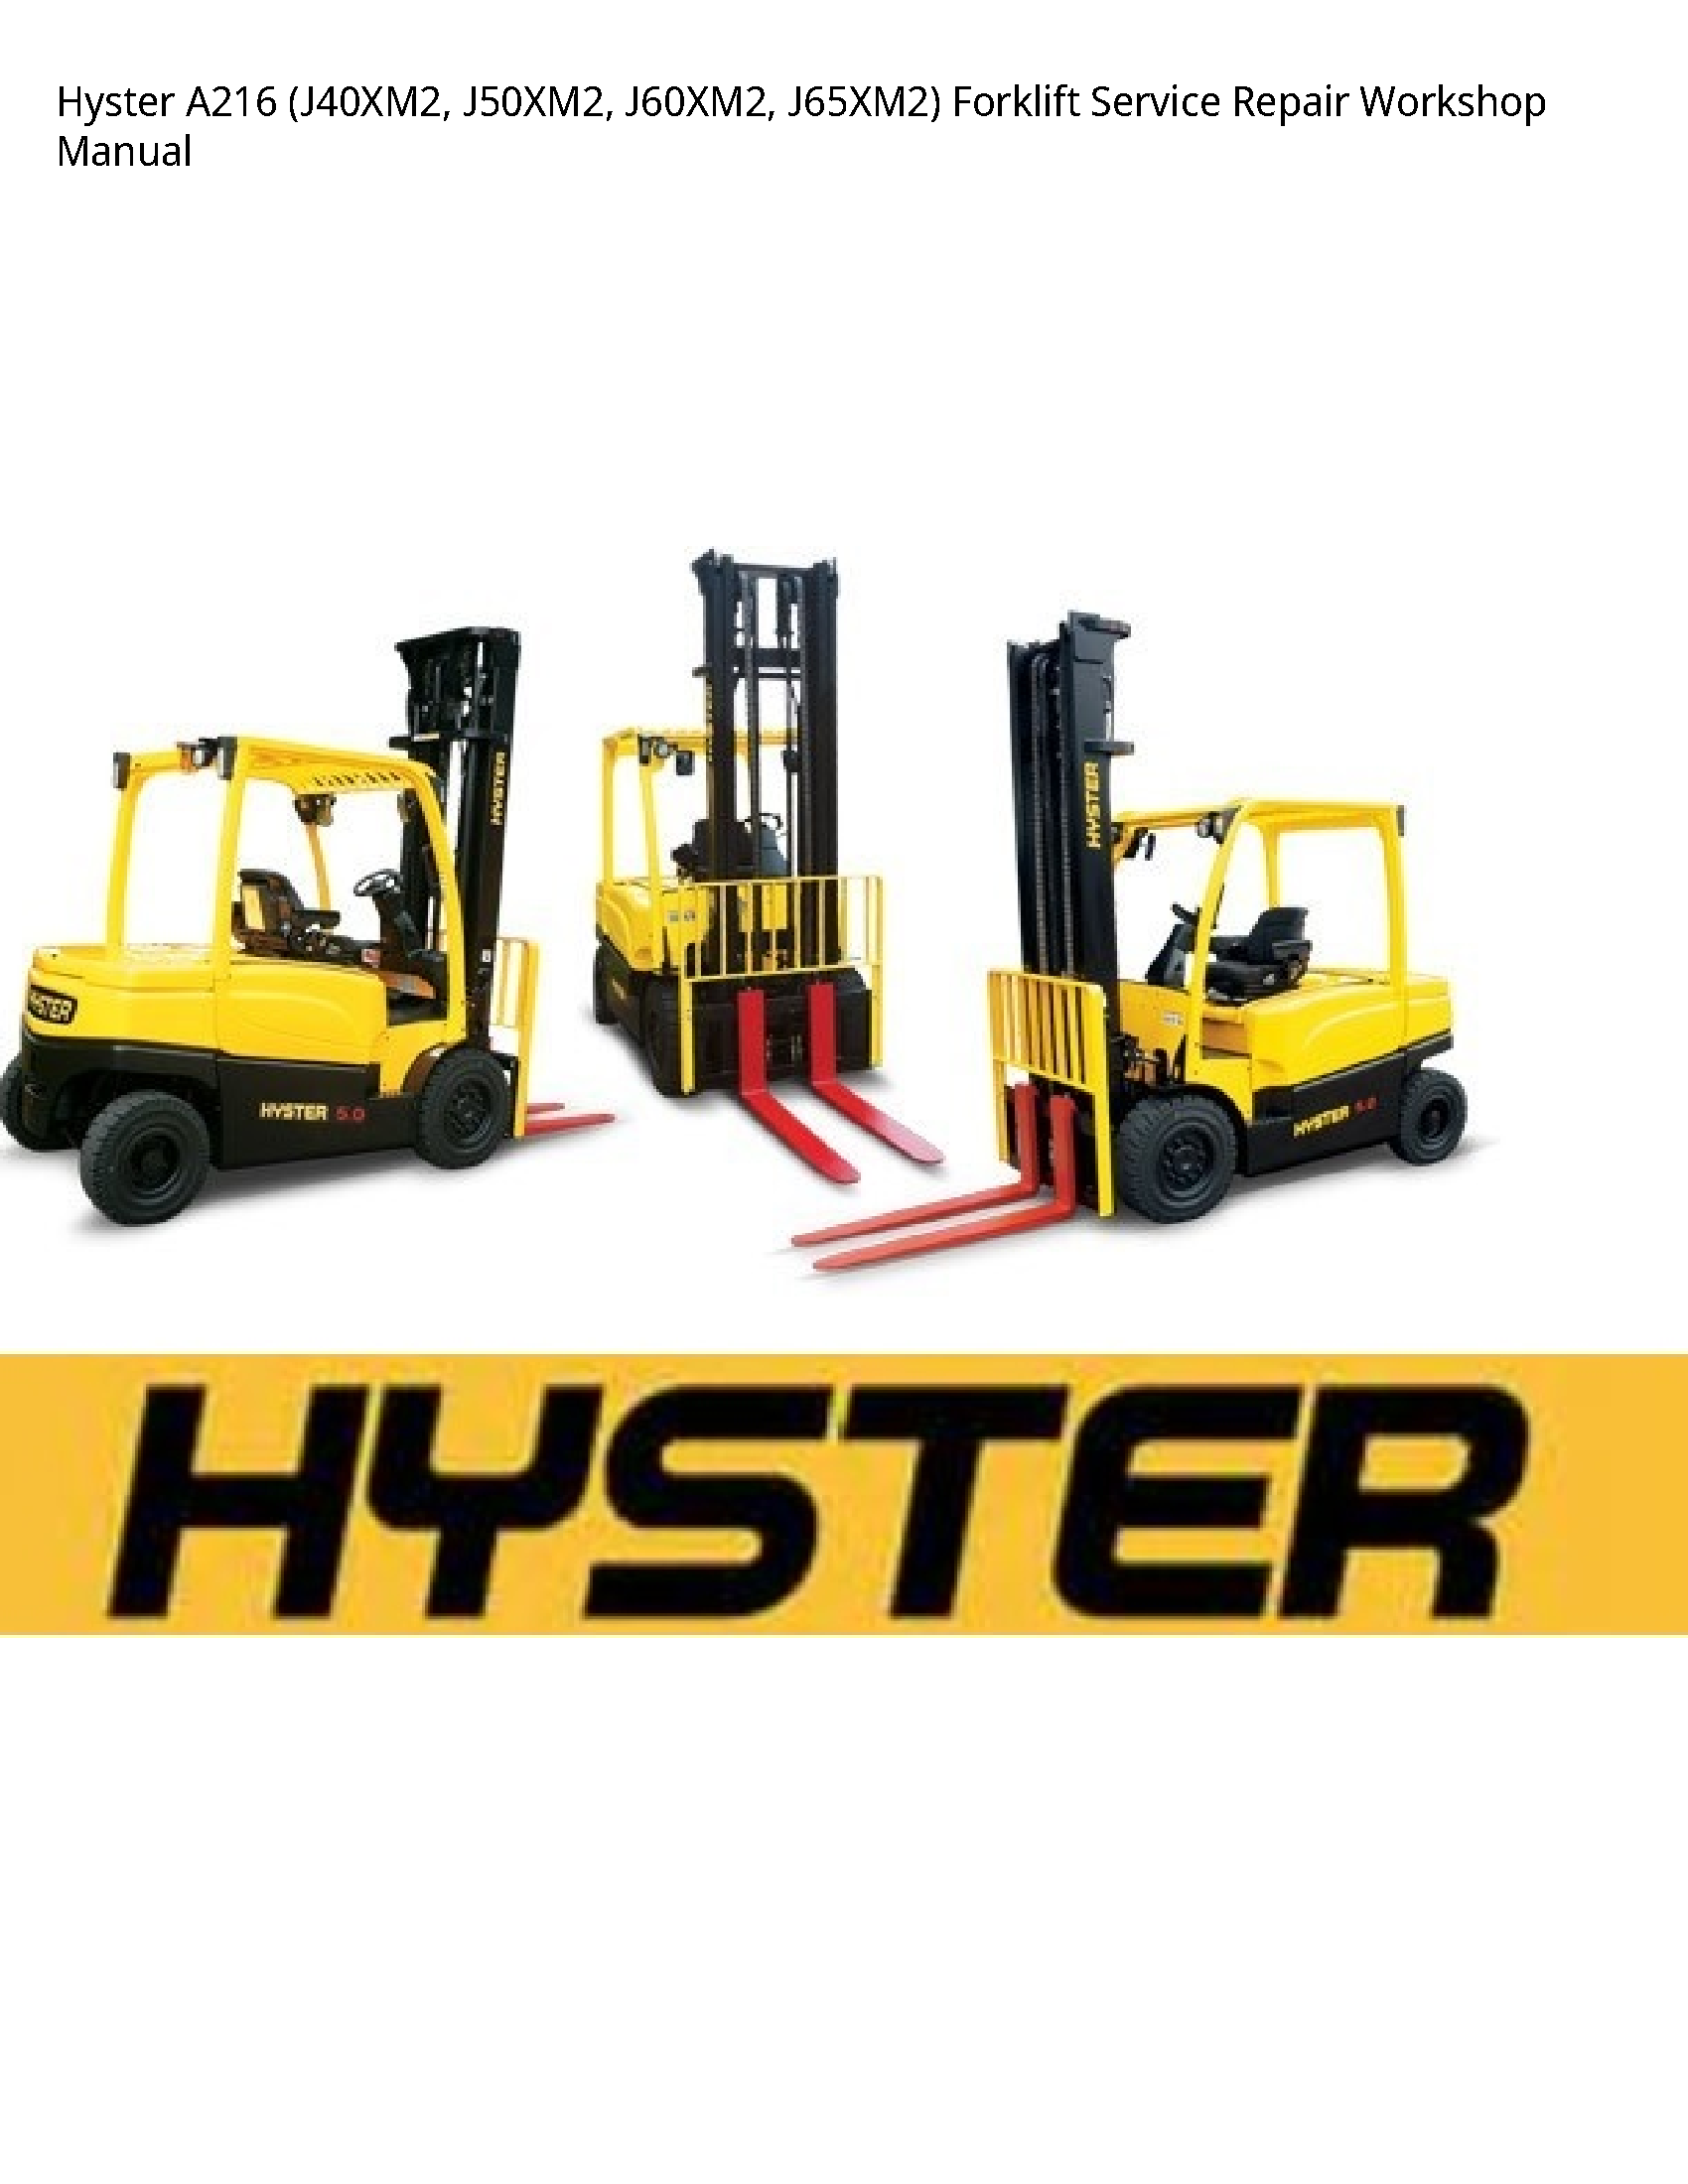 Hyster A216 Forklift manual